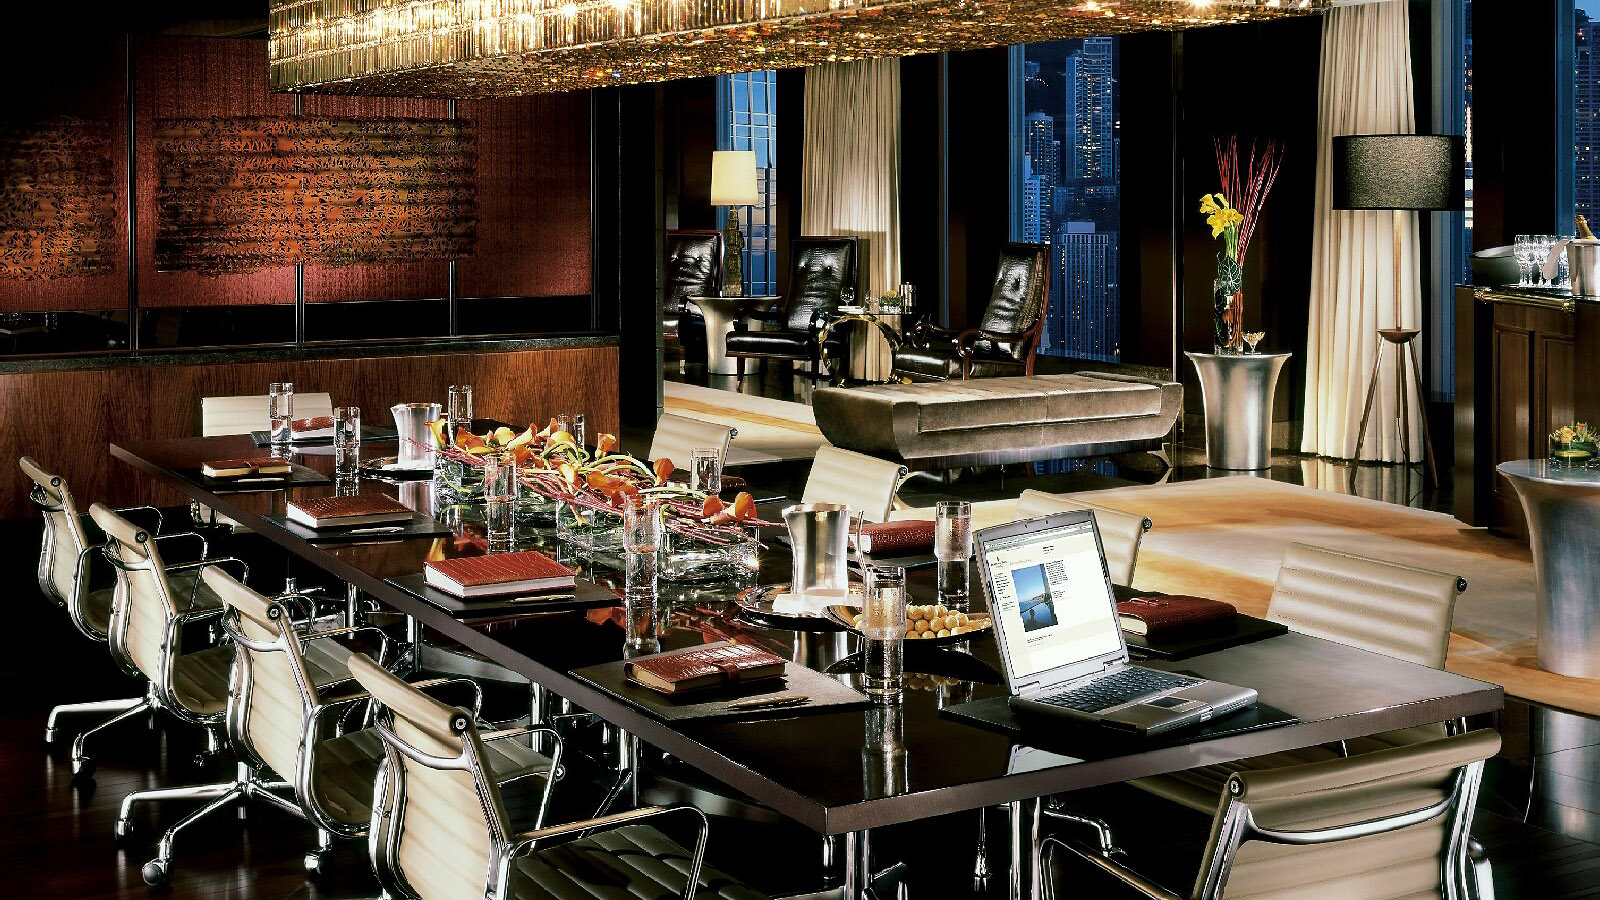 Group Value Offer at Four Seasons Hotel Hong Kong, a Luxury Hotel in Hong Kong